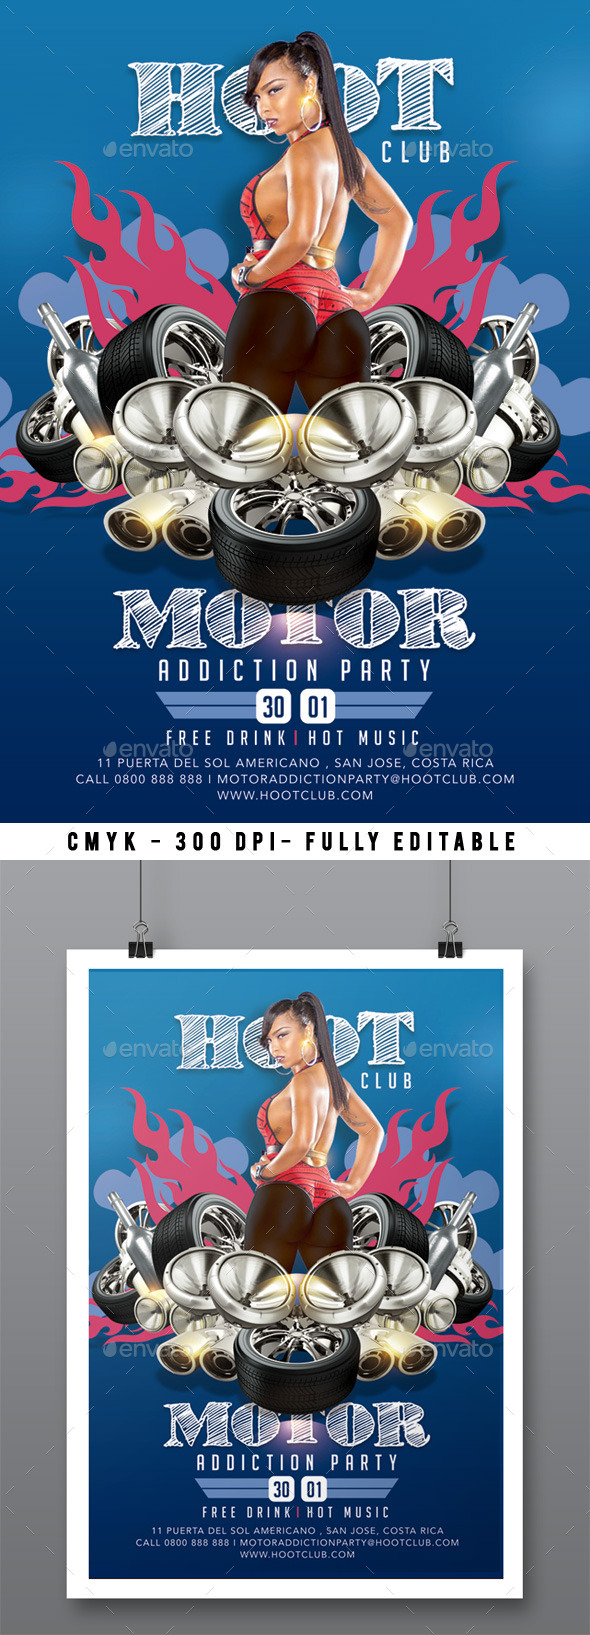 Motor Addiction Party In Hot Hoot Club